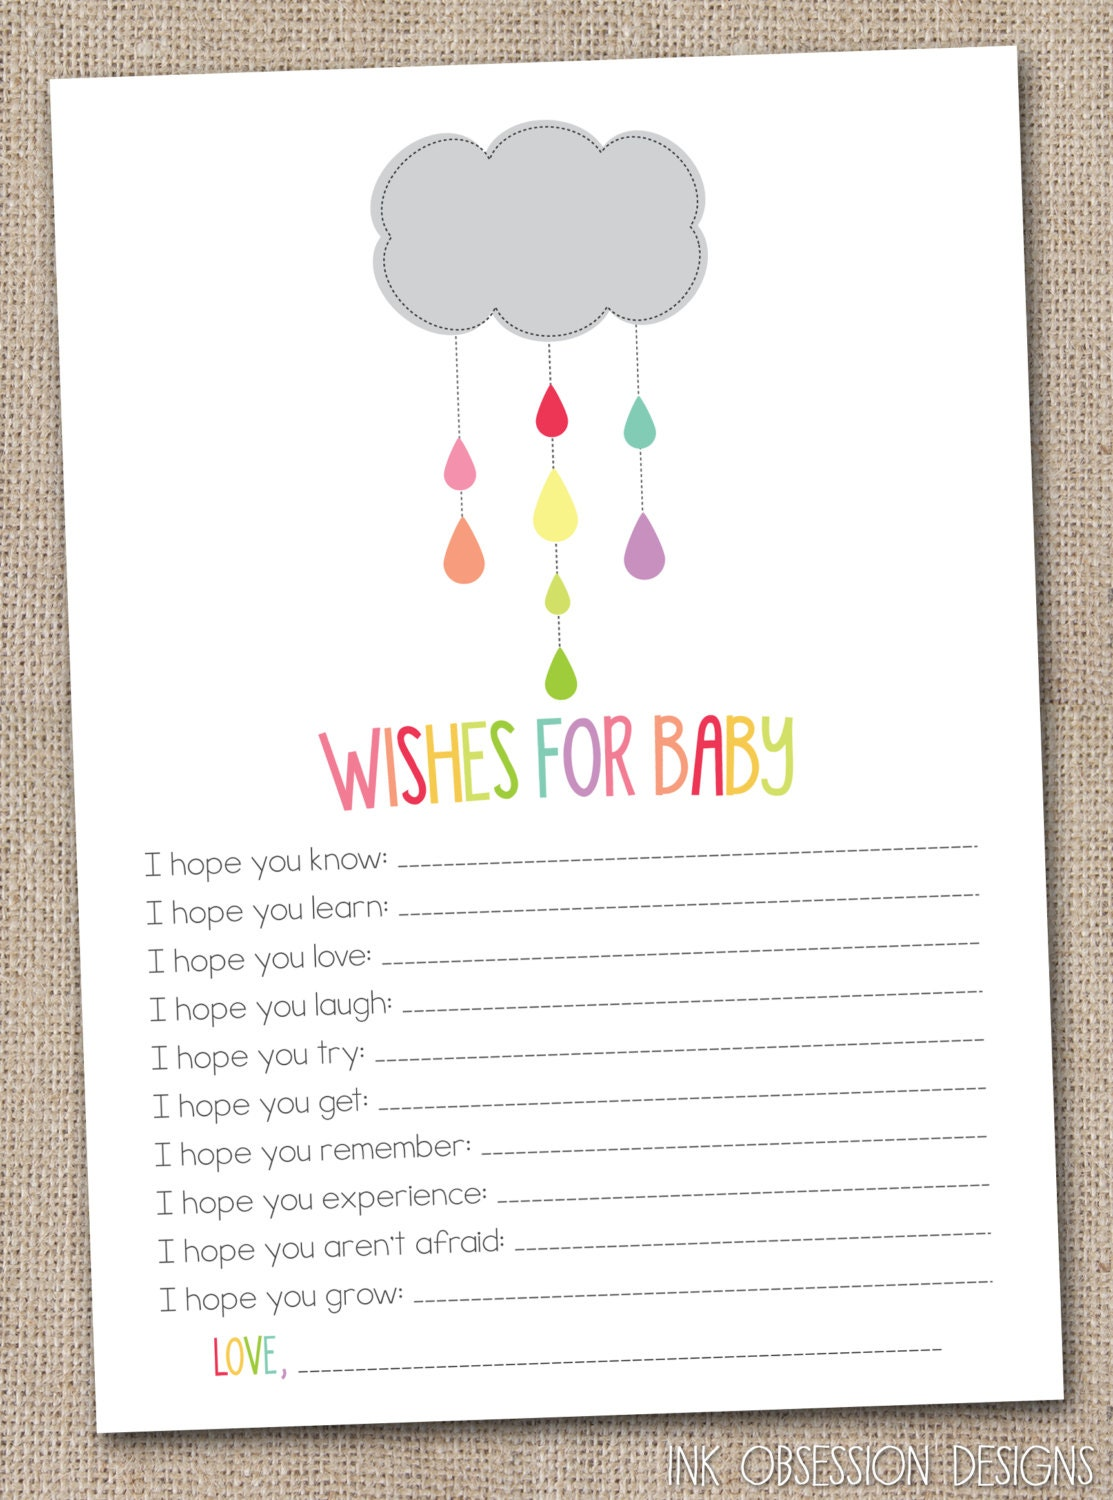 Insane image pertaining to wishes for baby printable